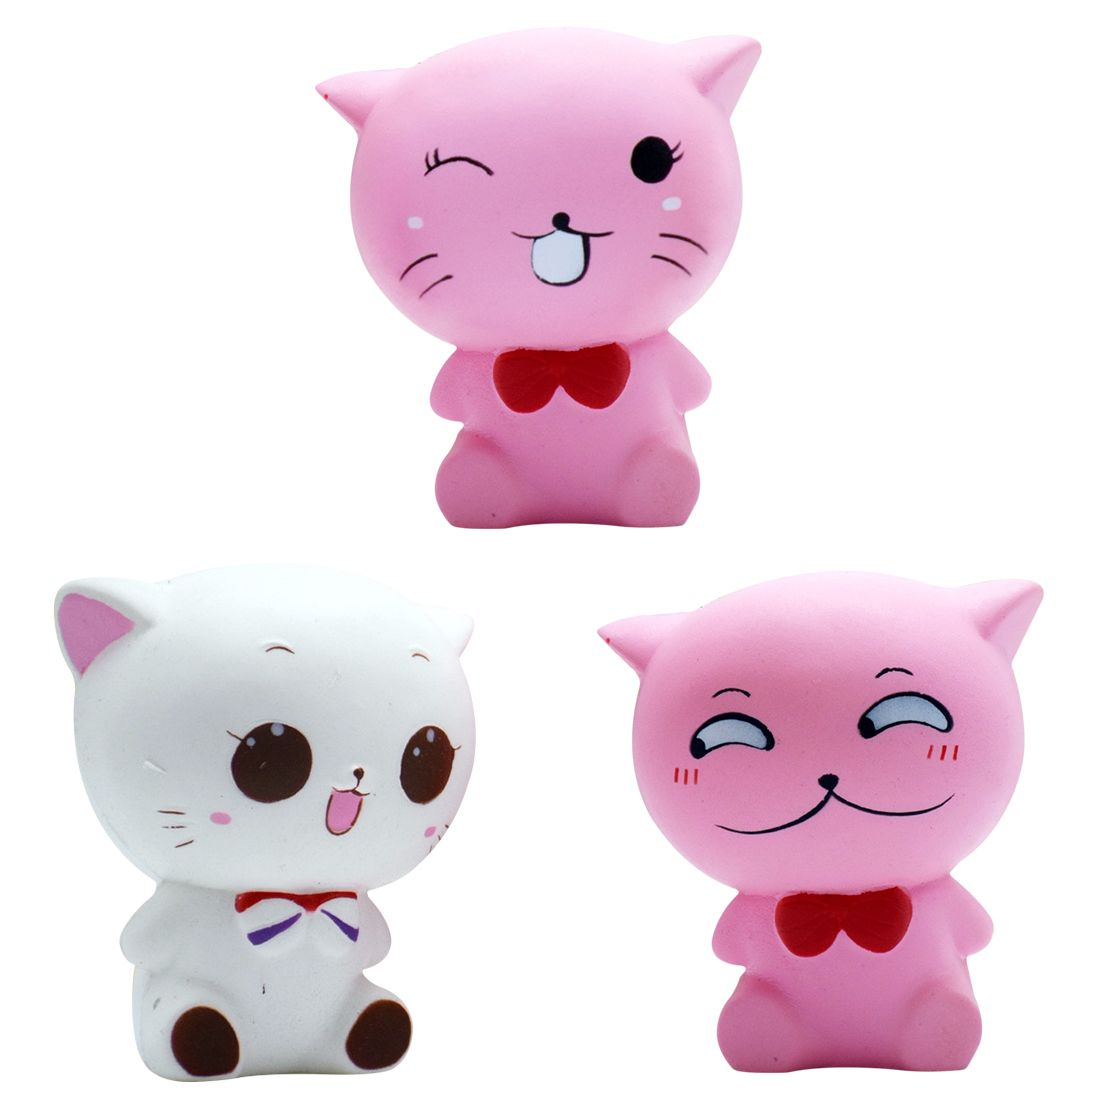 Etmakit Big Jumbo Cute Kawaii Cat Squishy Squeeze Squishi Squshy Toy Slow Rising for Adults Relieves Stress Anxiety Decoration